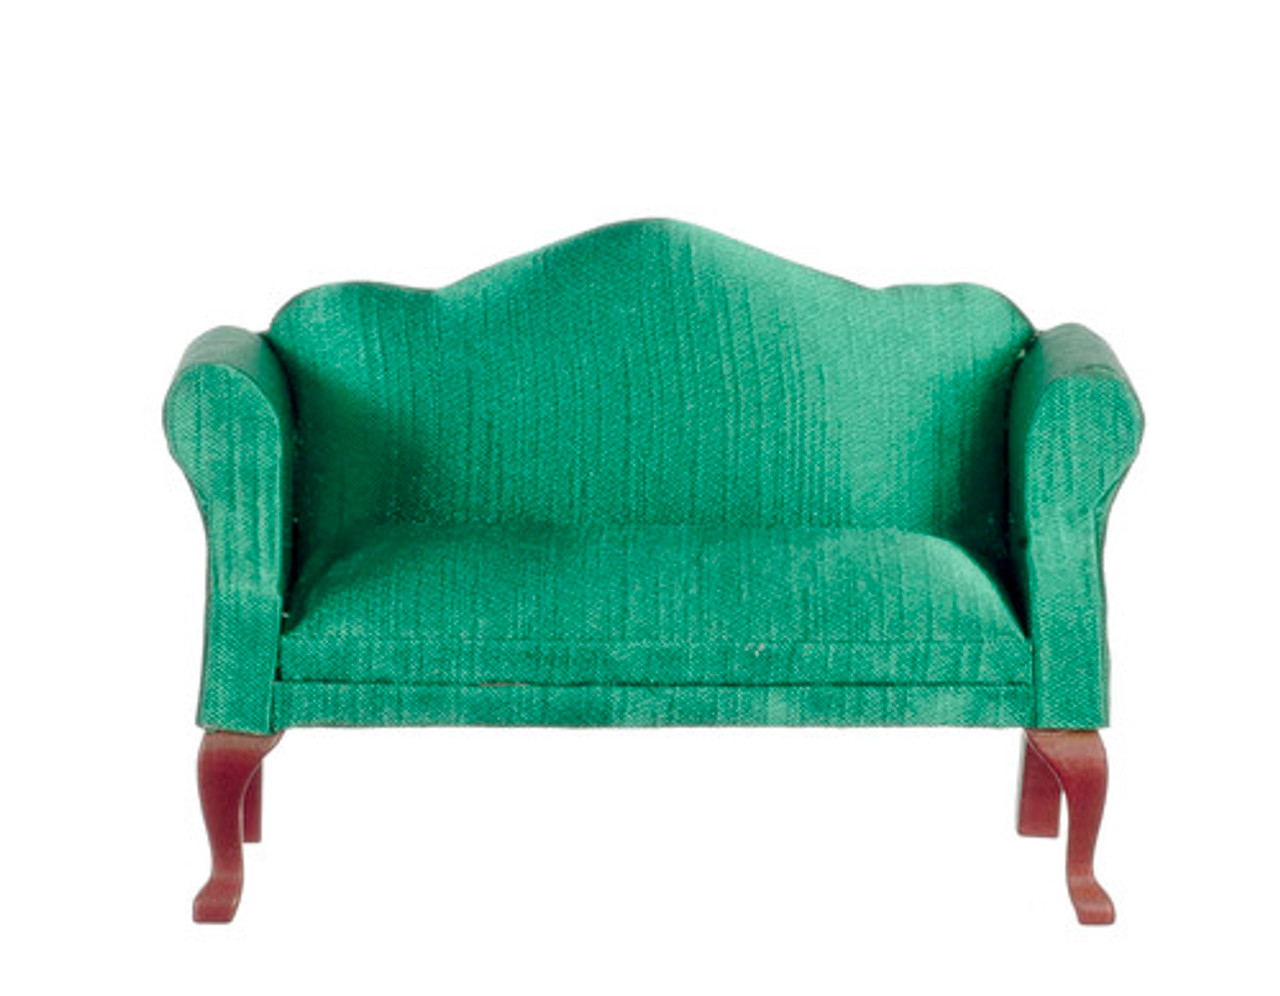 Queen Anne Loveseat - Green and Mahogany